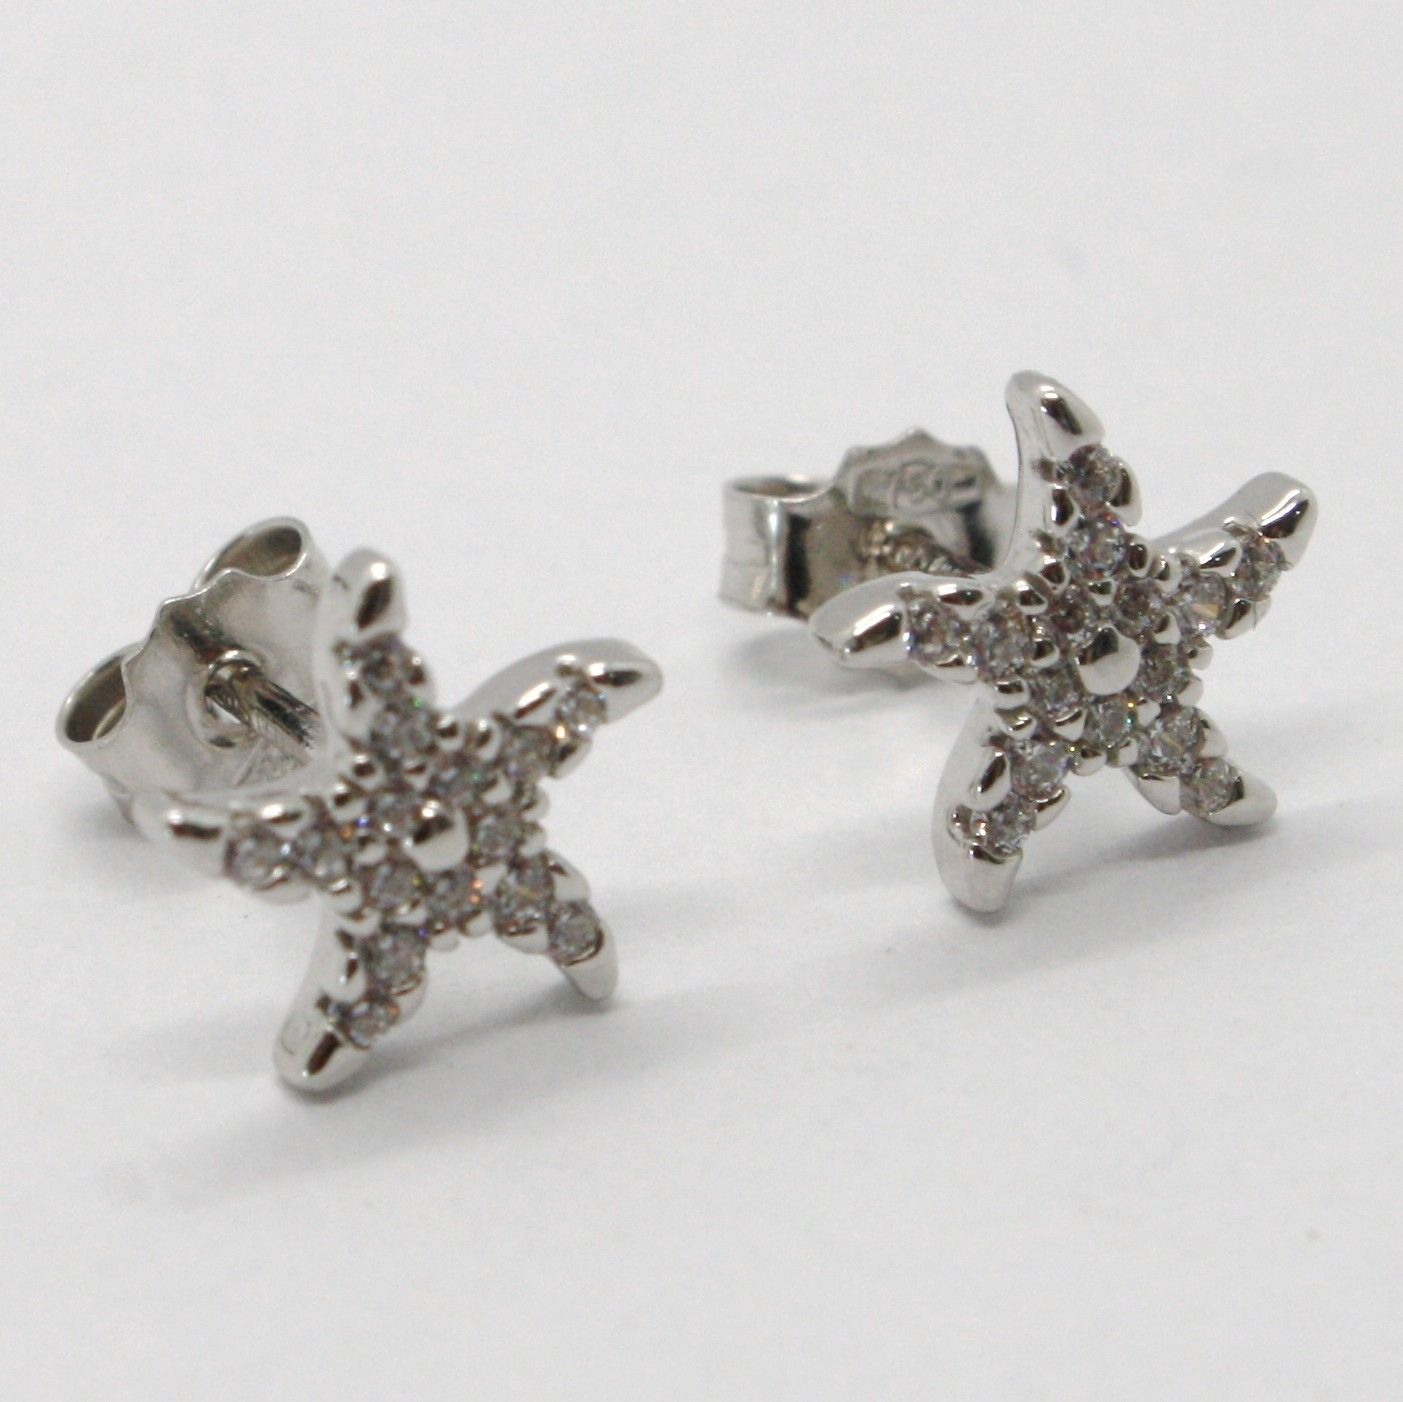 18K WHITE GOLD EARRINGS, STAR STARFISH WITH ZIRCONIA, LENGTH 9 MM, MADE IN ITALY